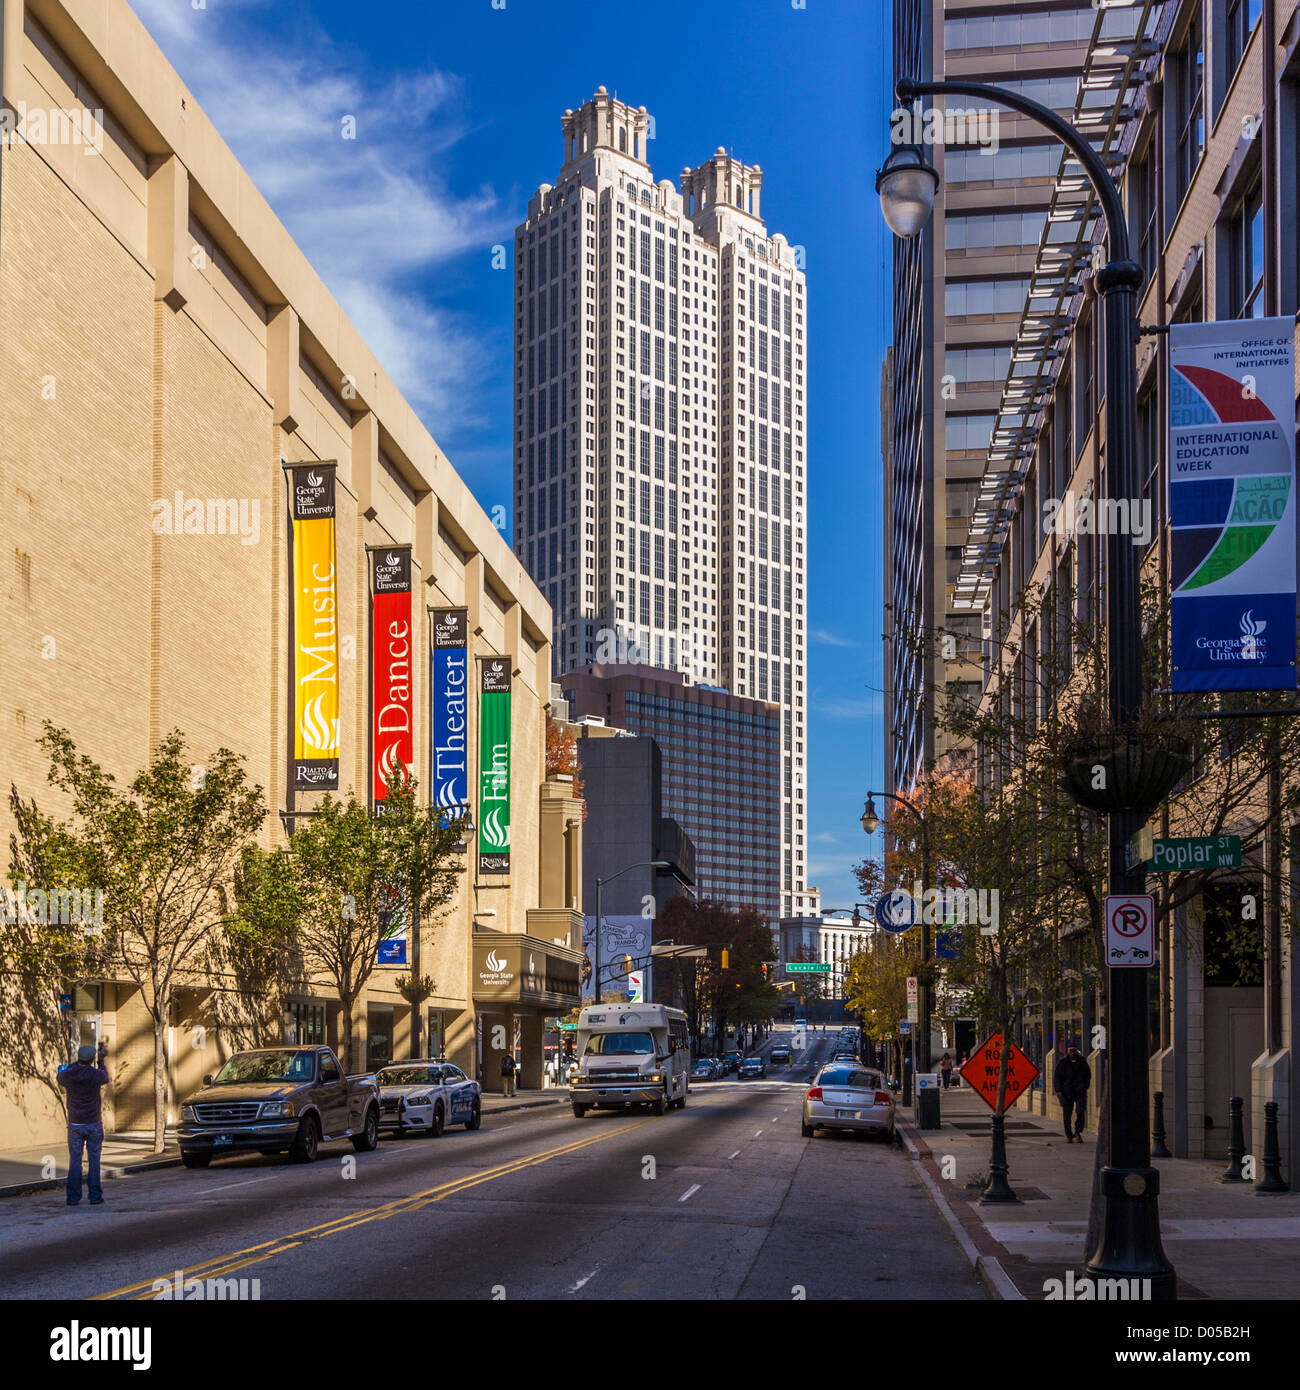 View from Forsyth and Poplear Street of 191 Peachtree Tower and Georgia State University Rialto Theater. - Stock Image